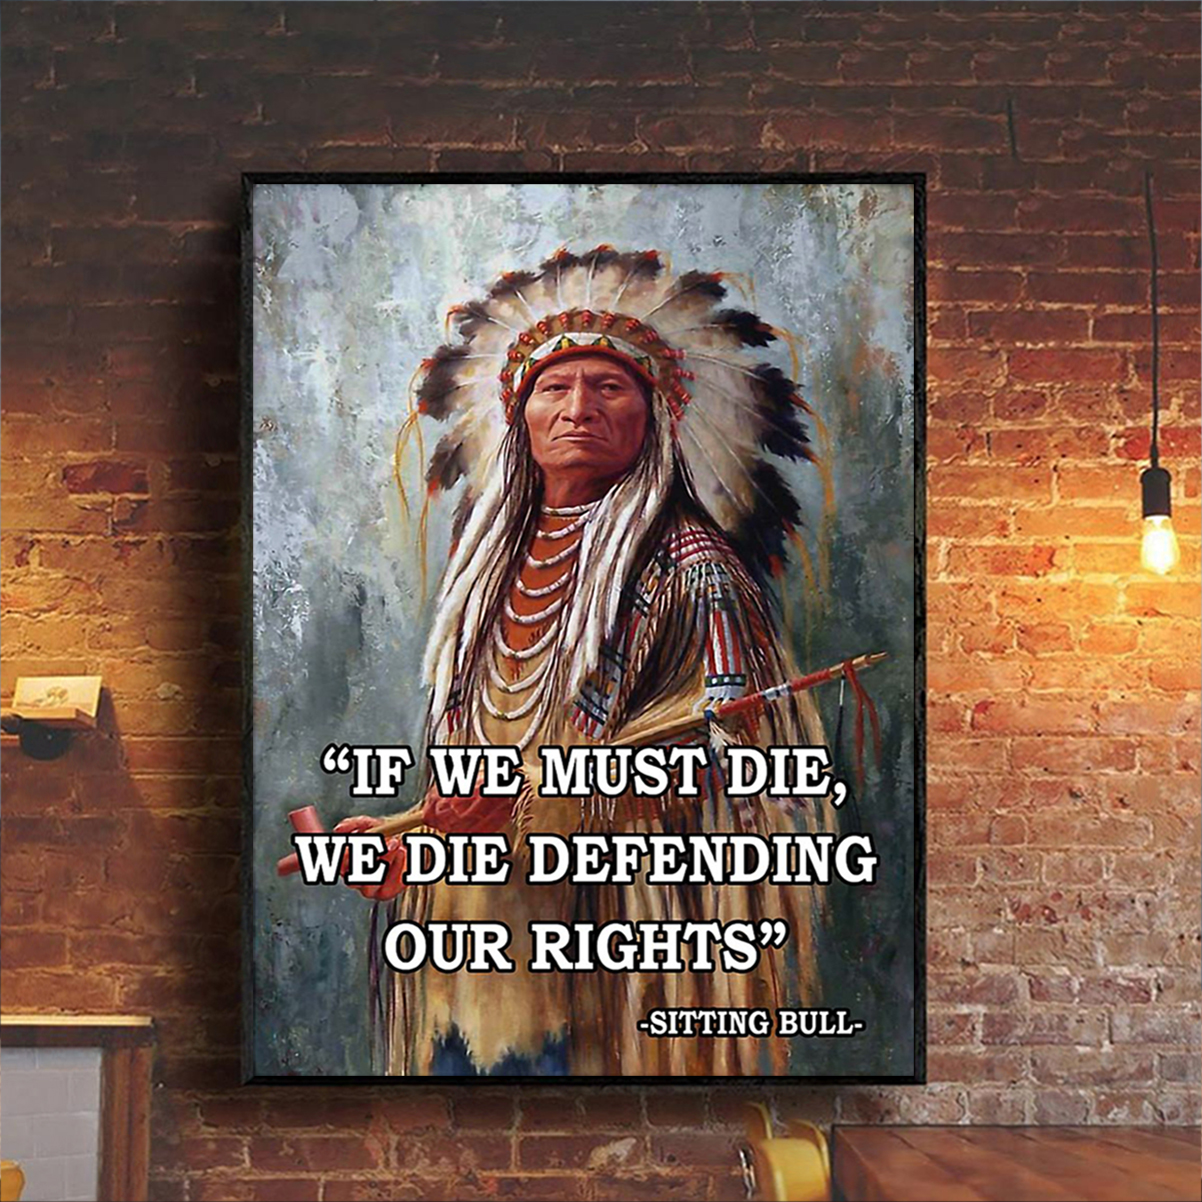 Sitting bull if we must die poster A1